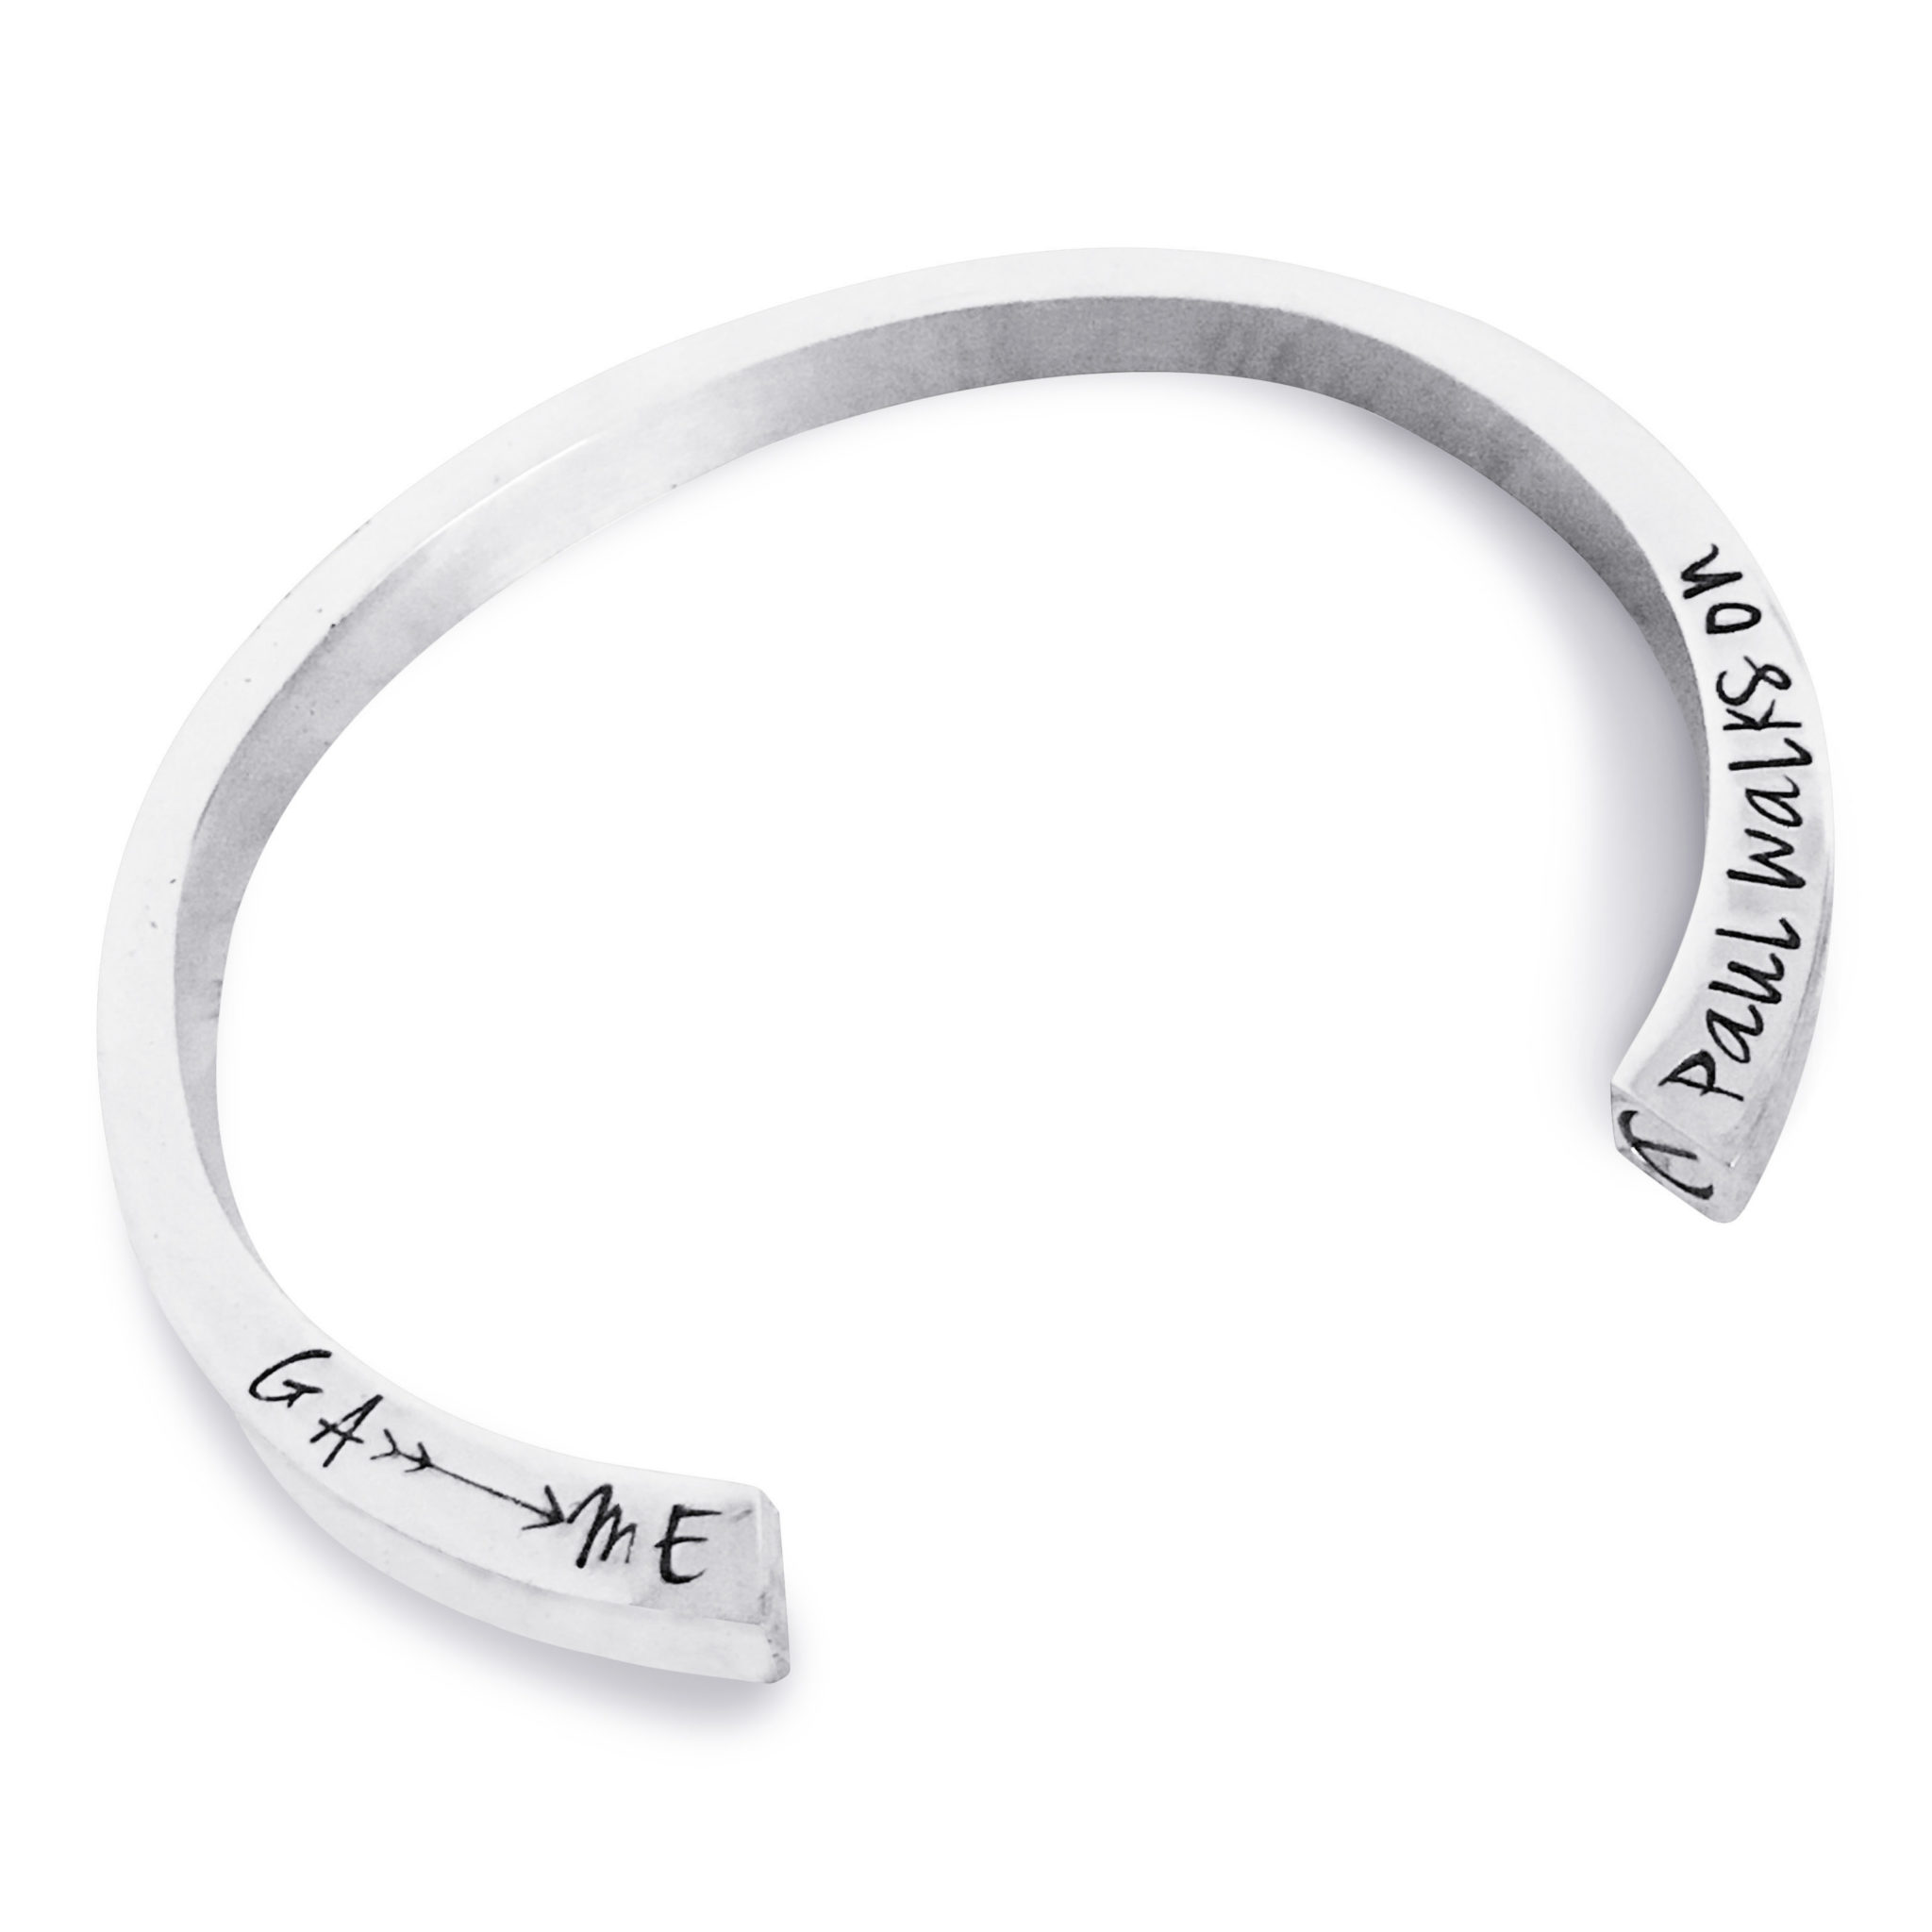 Personalized Outdoor Adventure Keepsake Bracelet